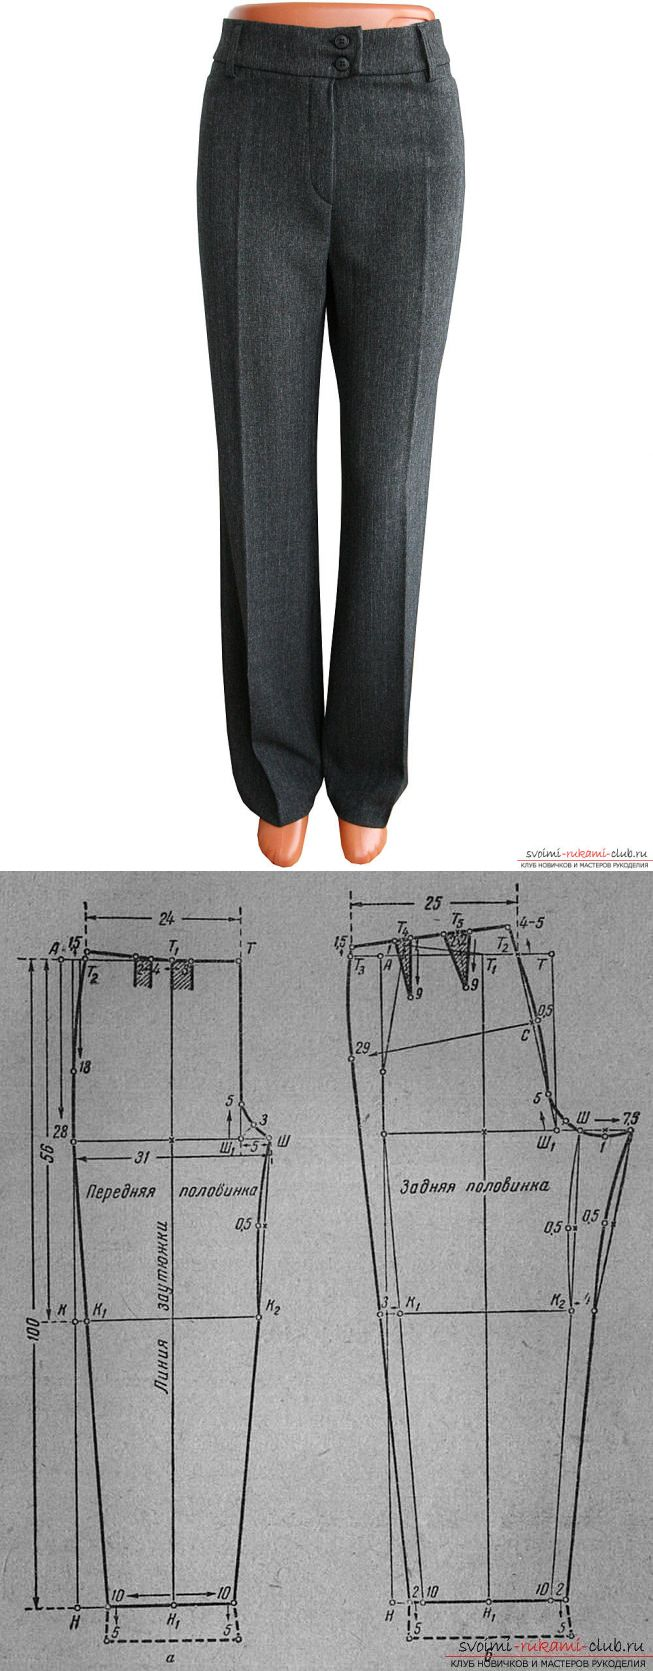 INSTRUCTIONS a drawing pattern of women's trousers classic models...♥ Deniz ♥